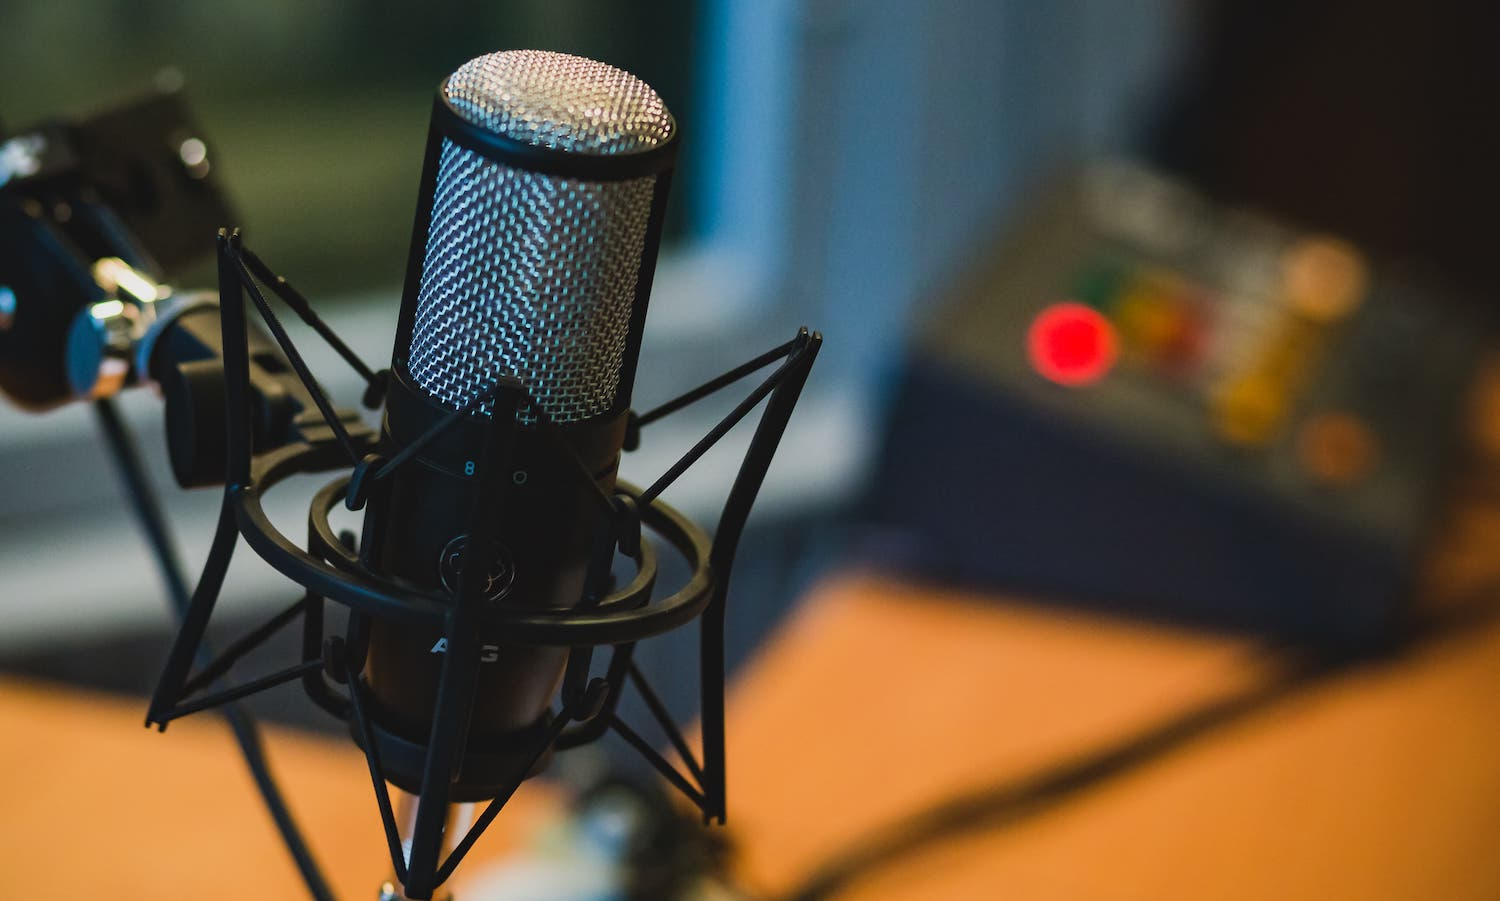 A microphone for podcasts (StockSnap_Maciej_Korsan)